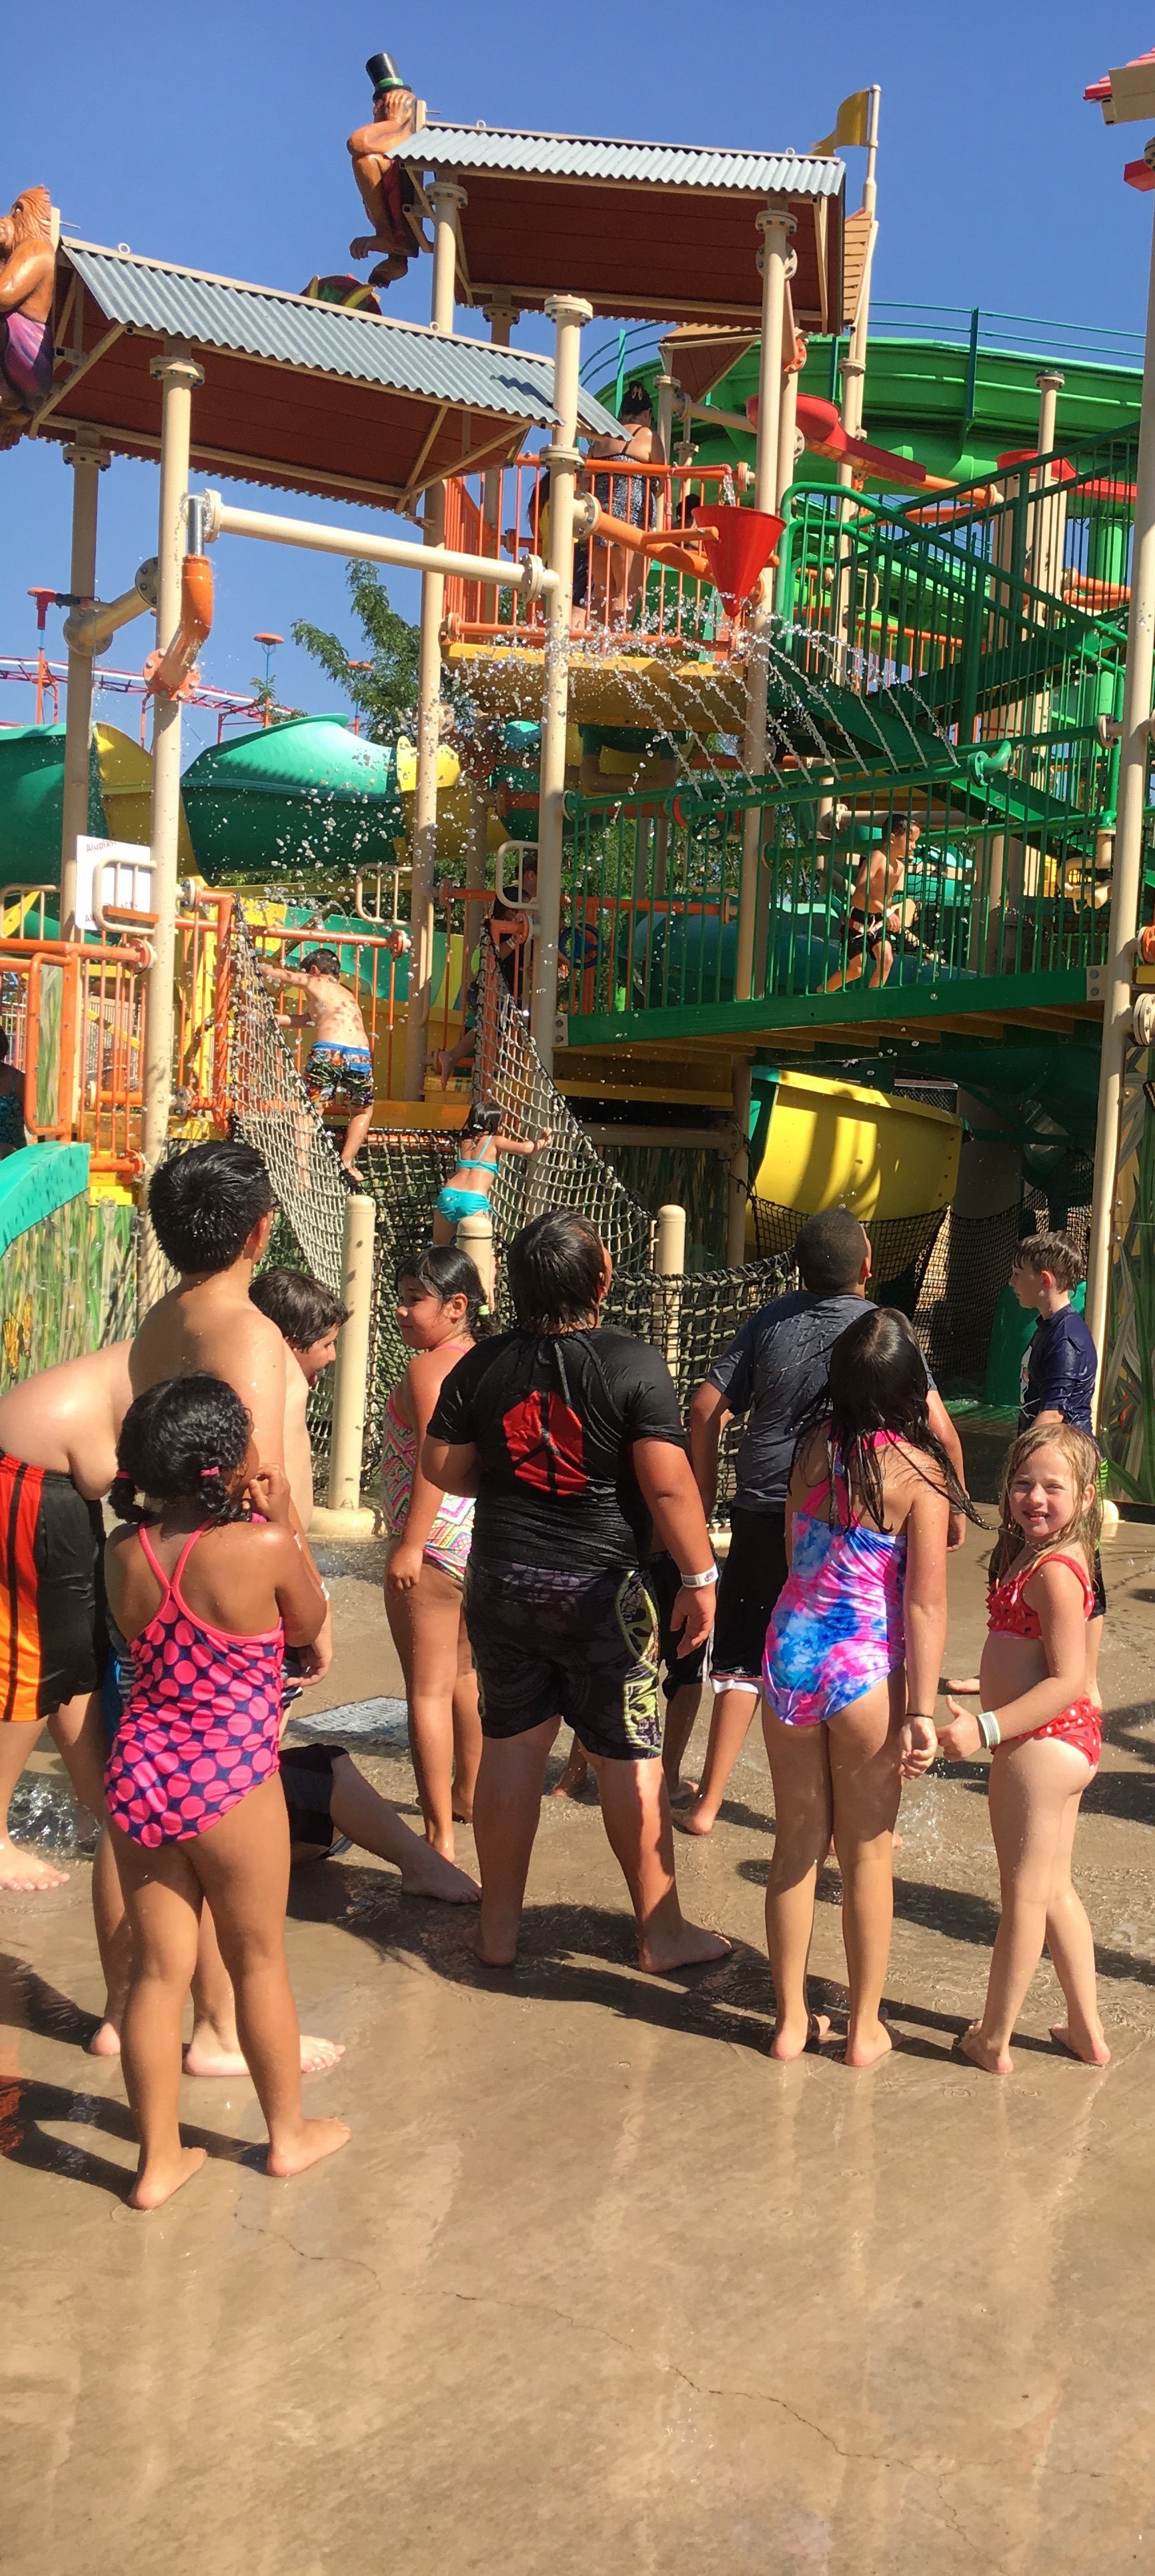 kids' activities at Cliff's Amusement Park waiting for the bucket of water